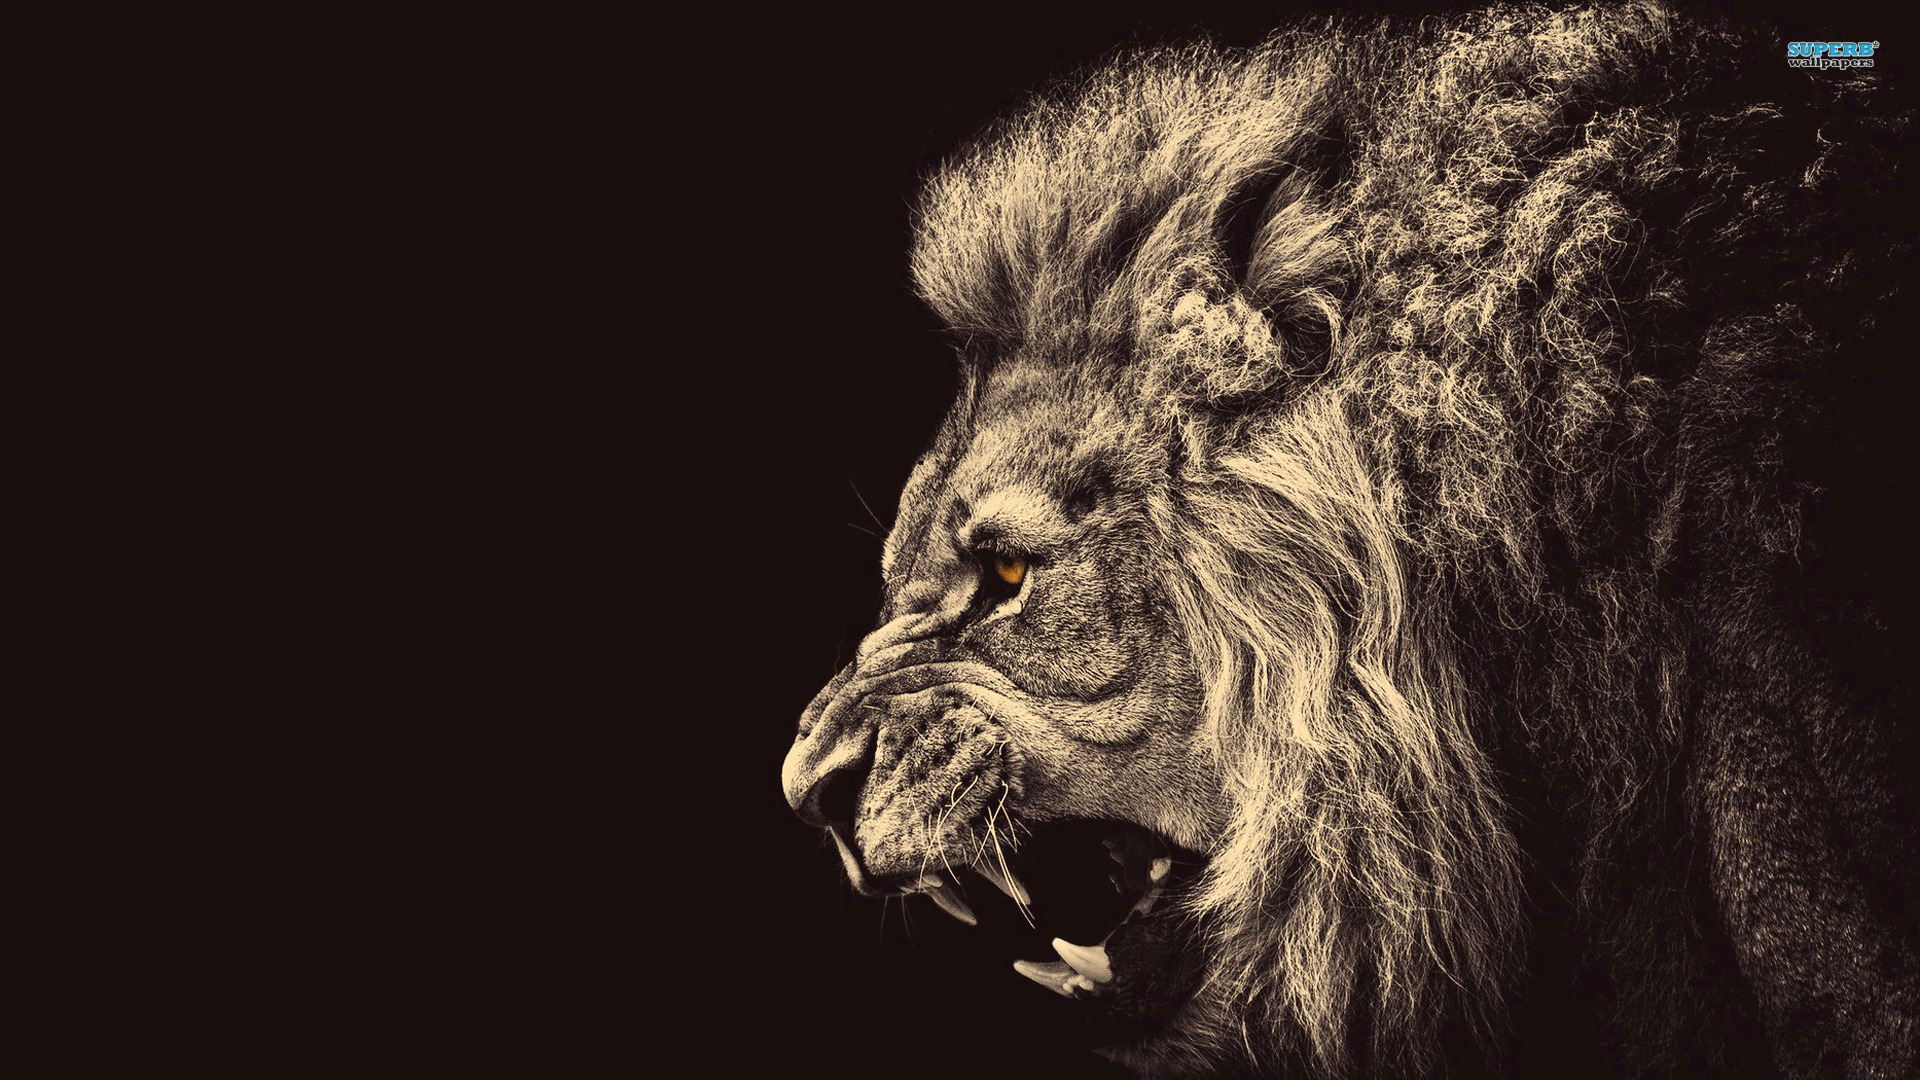 Lion Wallpaper image Photos Wallpaper HD 261 Backgrounds